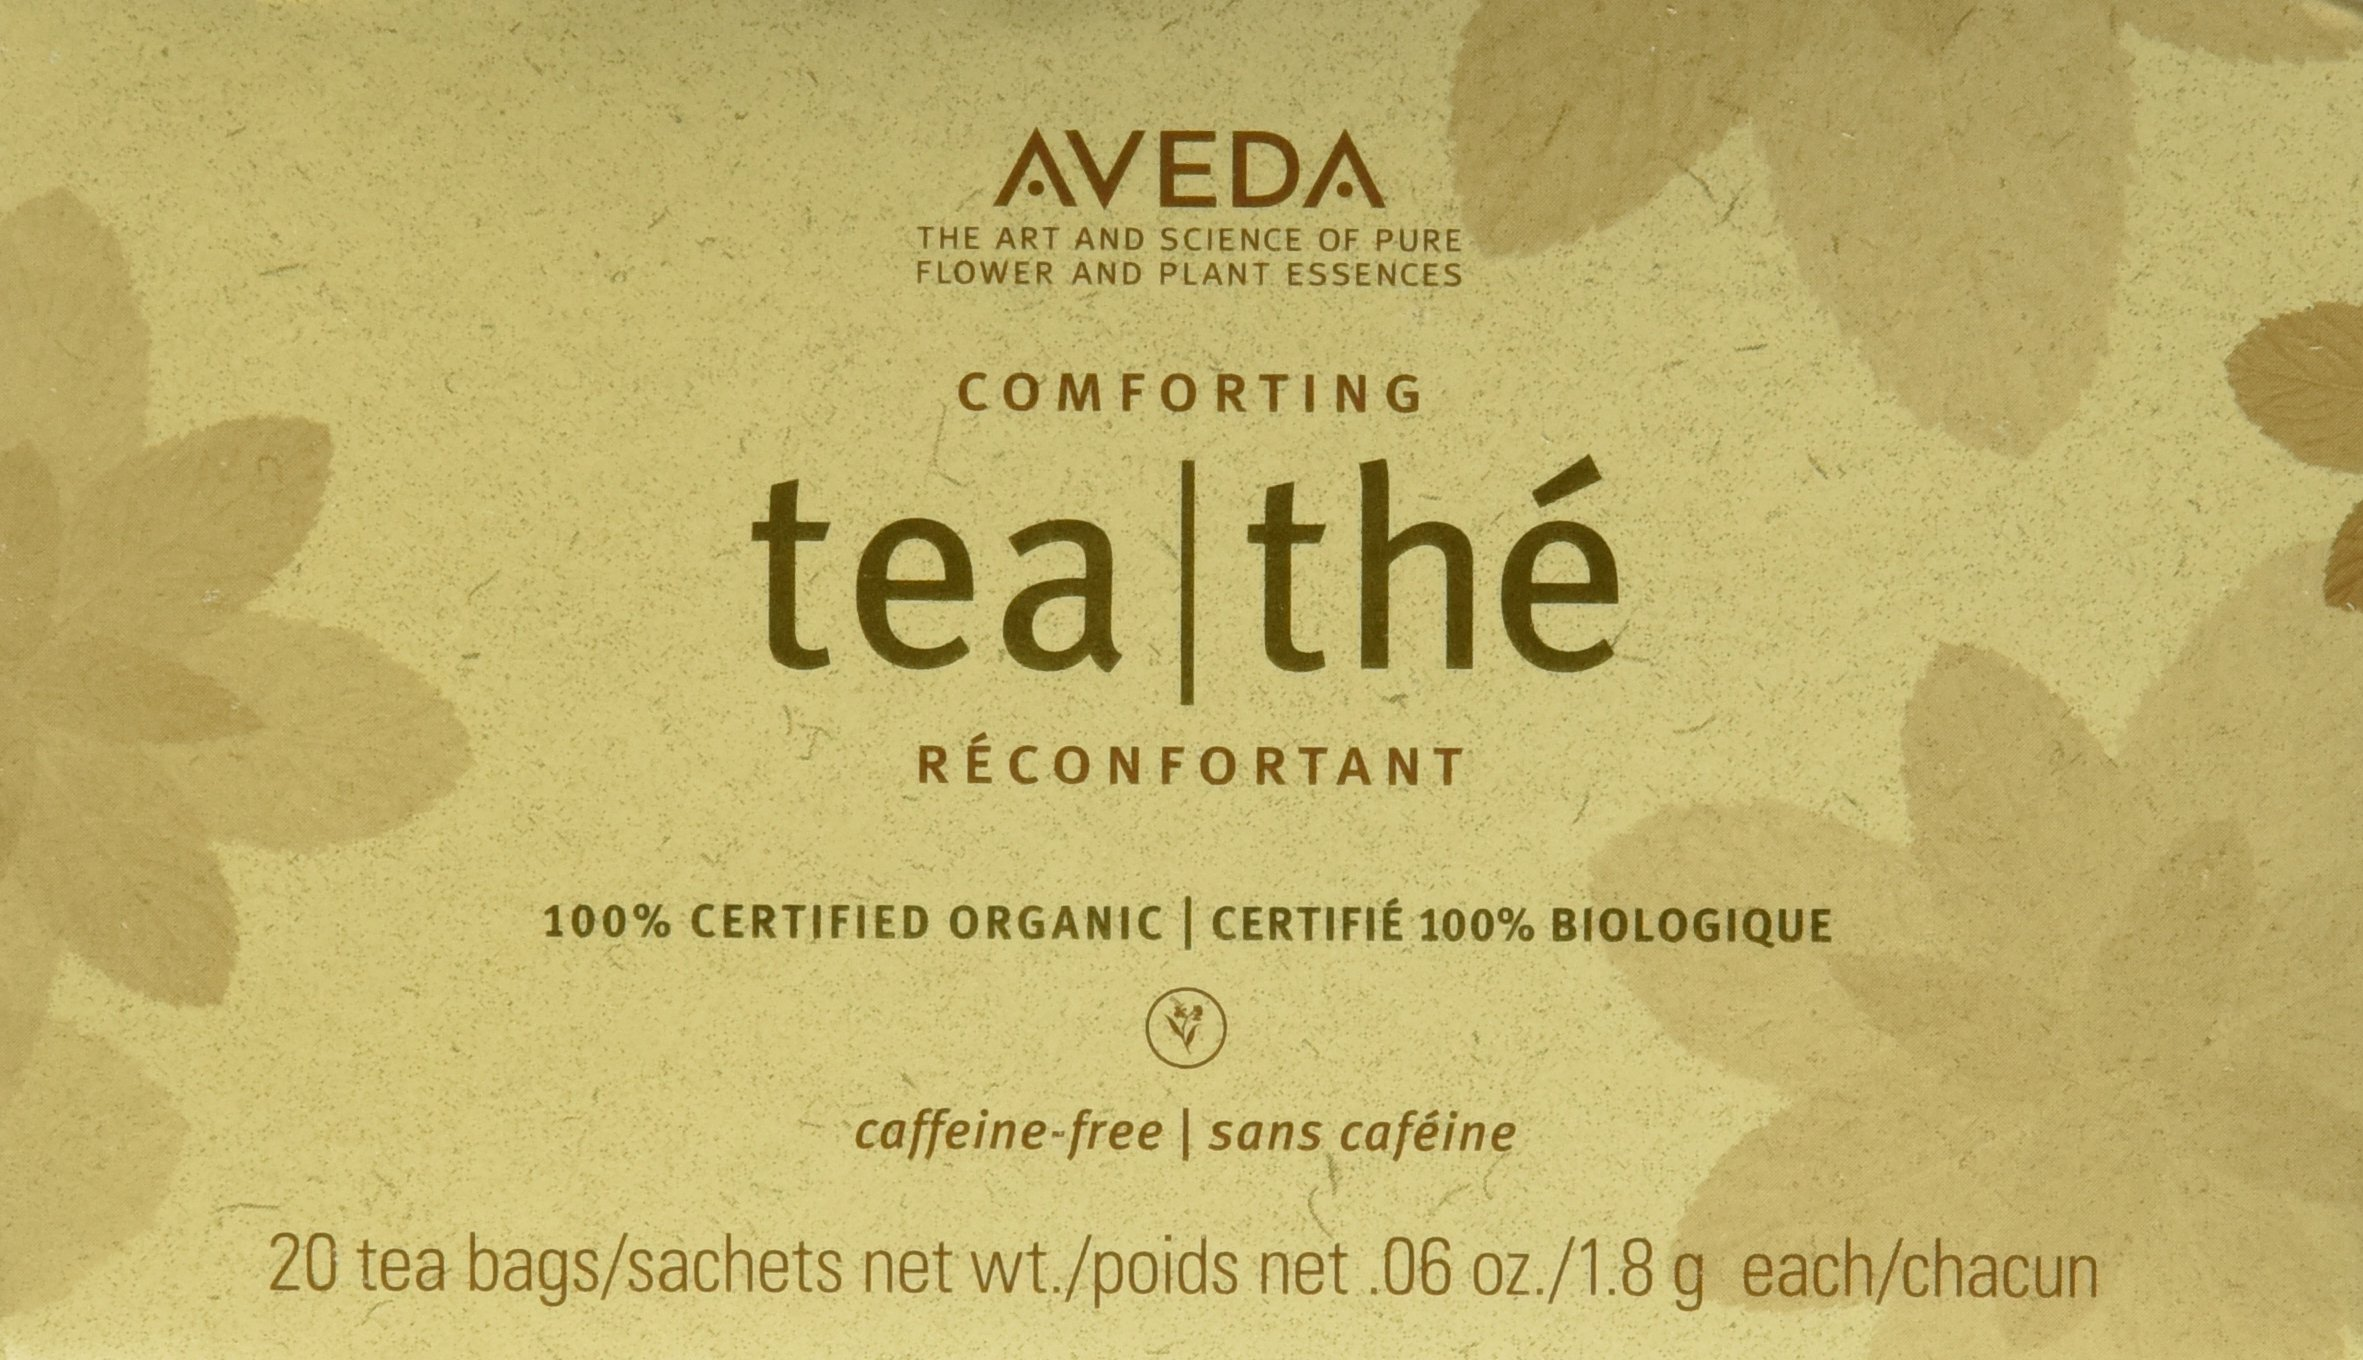 Aveda Comforting Tea Bags, 20 Count by Aveda